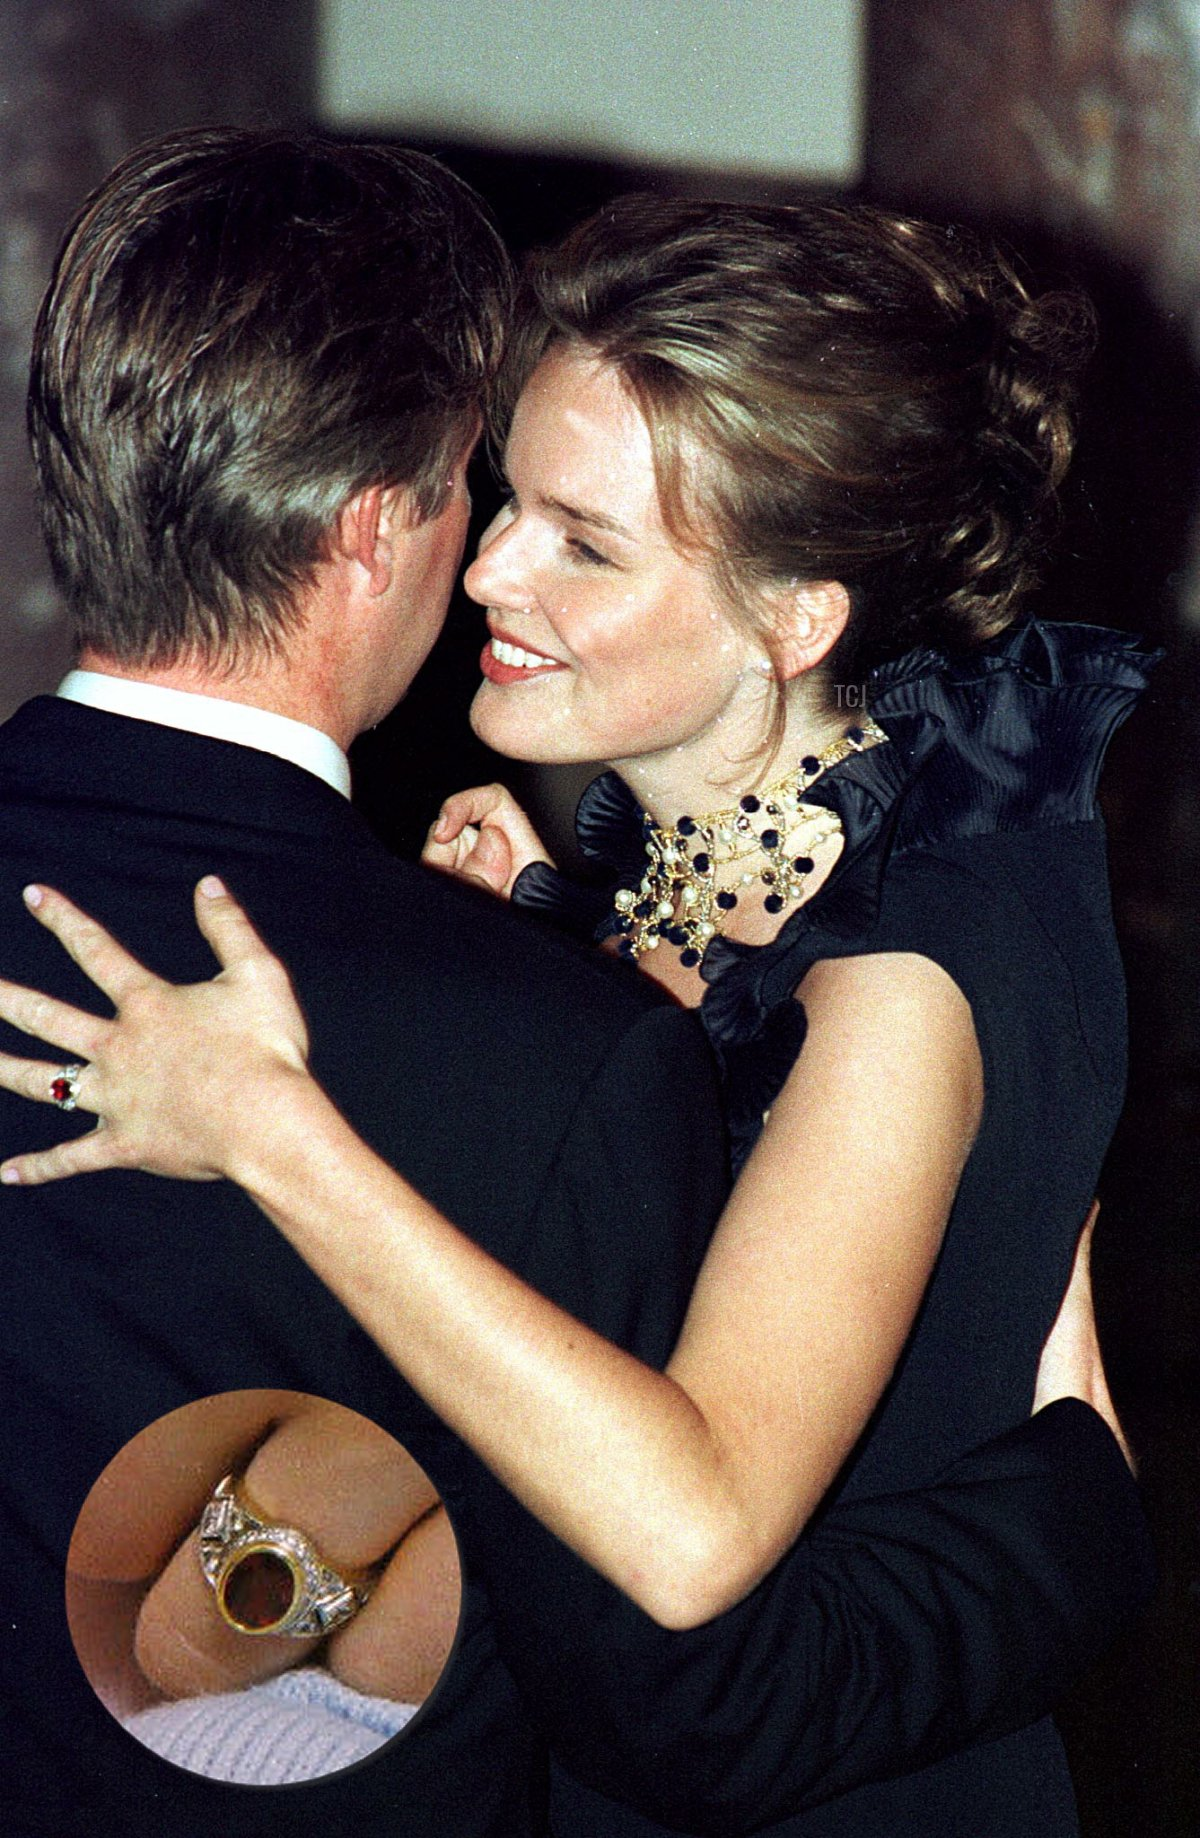 Prince Philippe of Belgium dances with his fiancee, Mathilde d'Udekem d'Acoz, during their engagement party at the Royal Castel in Brussels 13 November 1999. Prince Philippe and Mathilde d'Udekem d'Acoz will marry on 04 December 1999 in Brussels